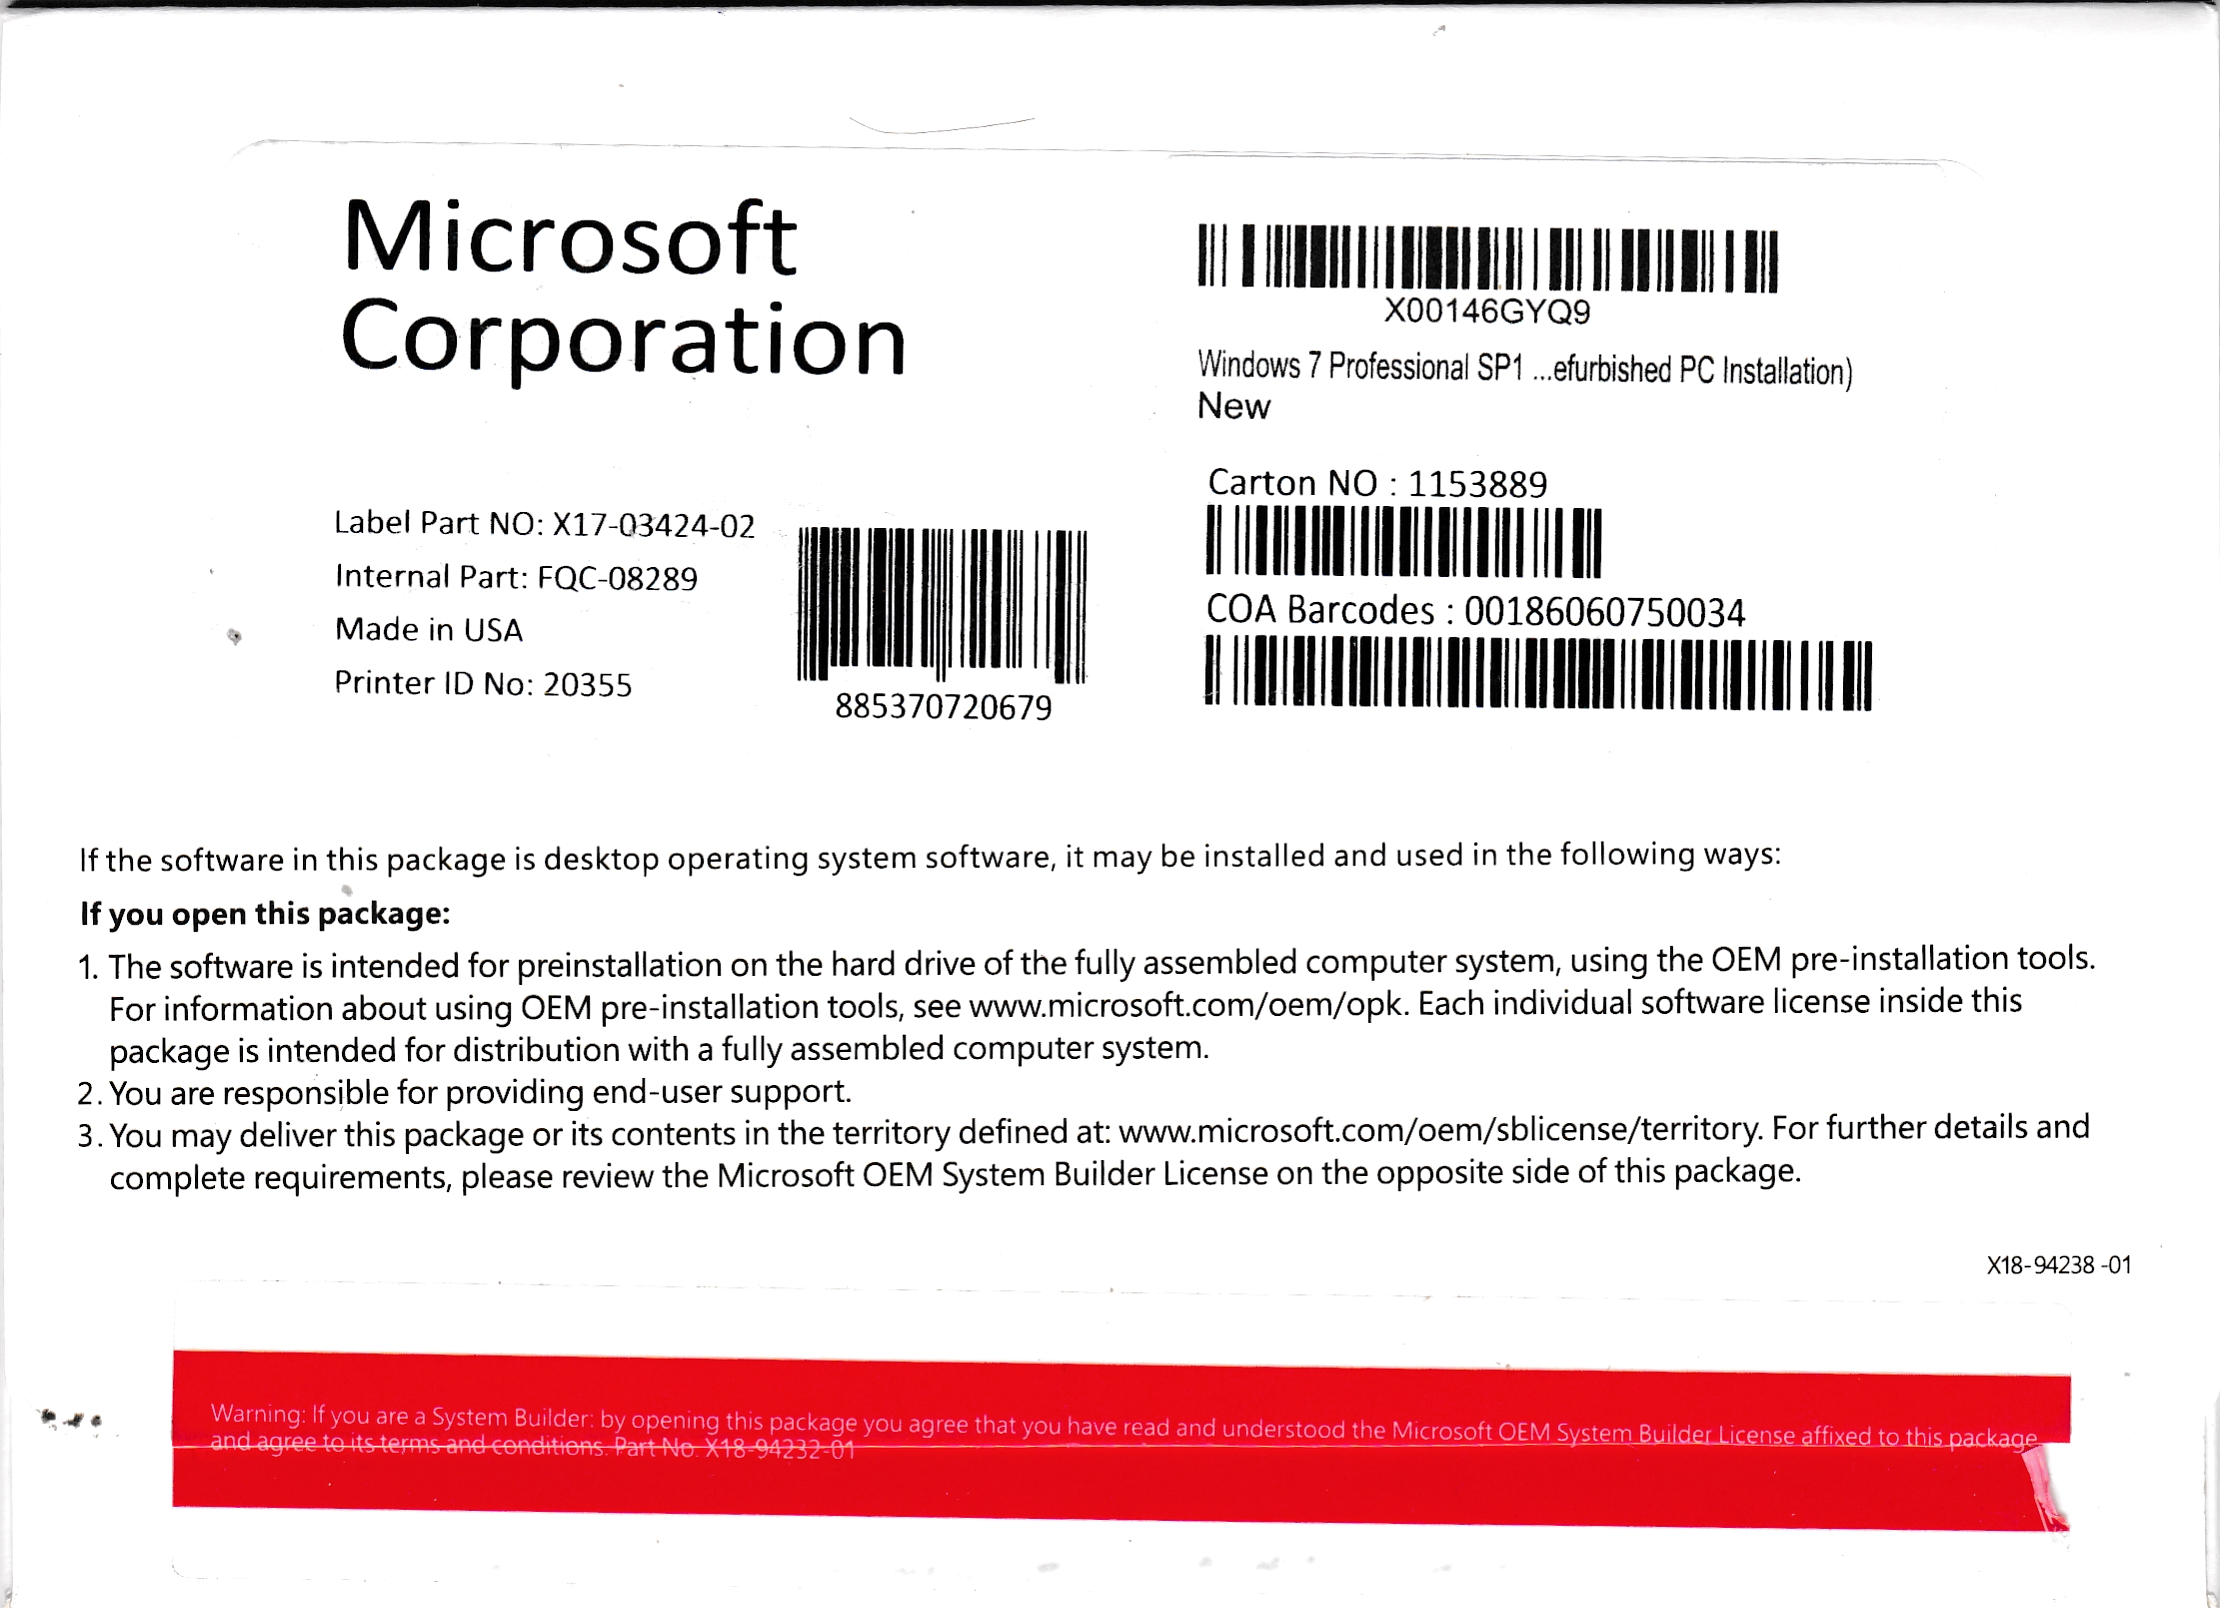 Image of Windows 7 Pro OEM Package with Product Keys.jpg